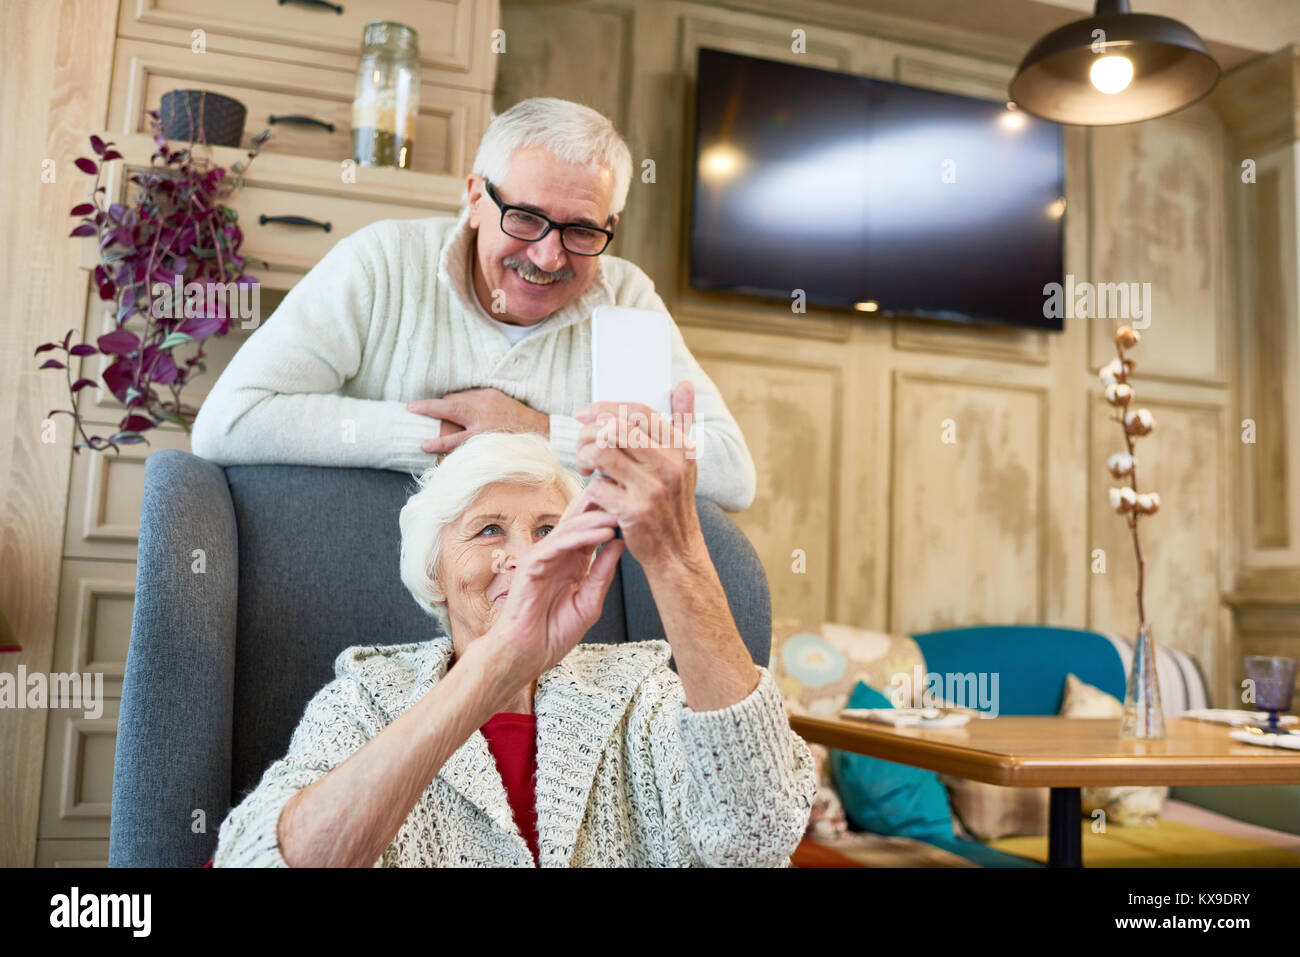 Taking Selfie with Senior Husband - Stock Image